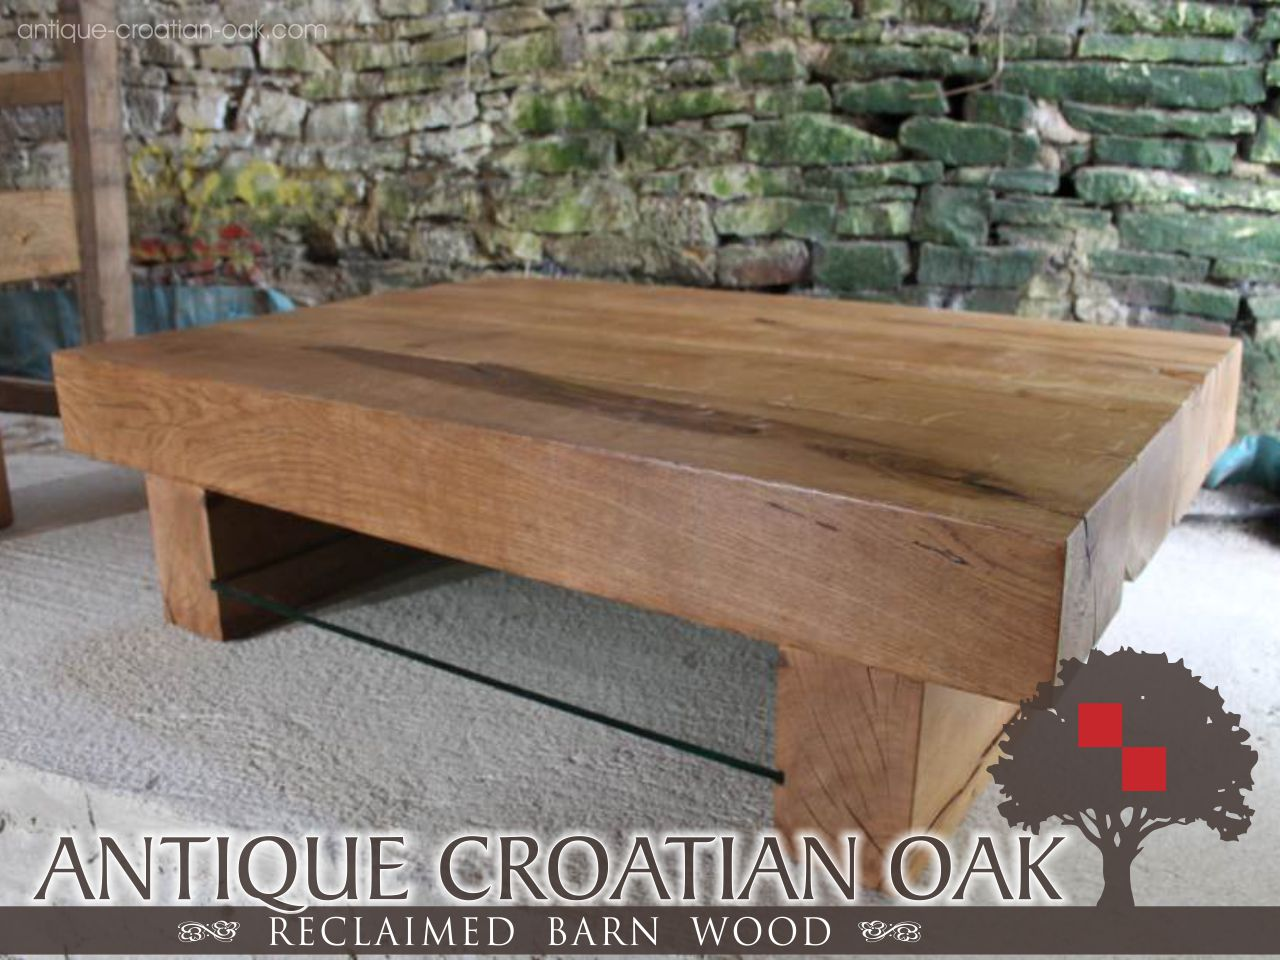 Reclaimed barn wood - Oak antique